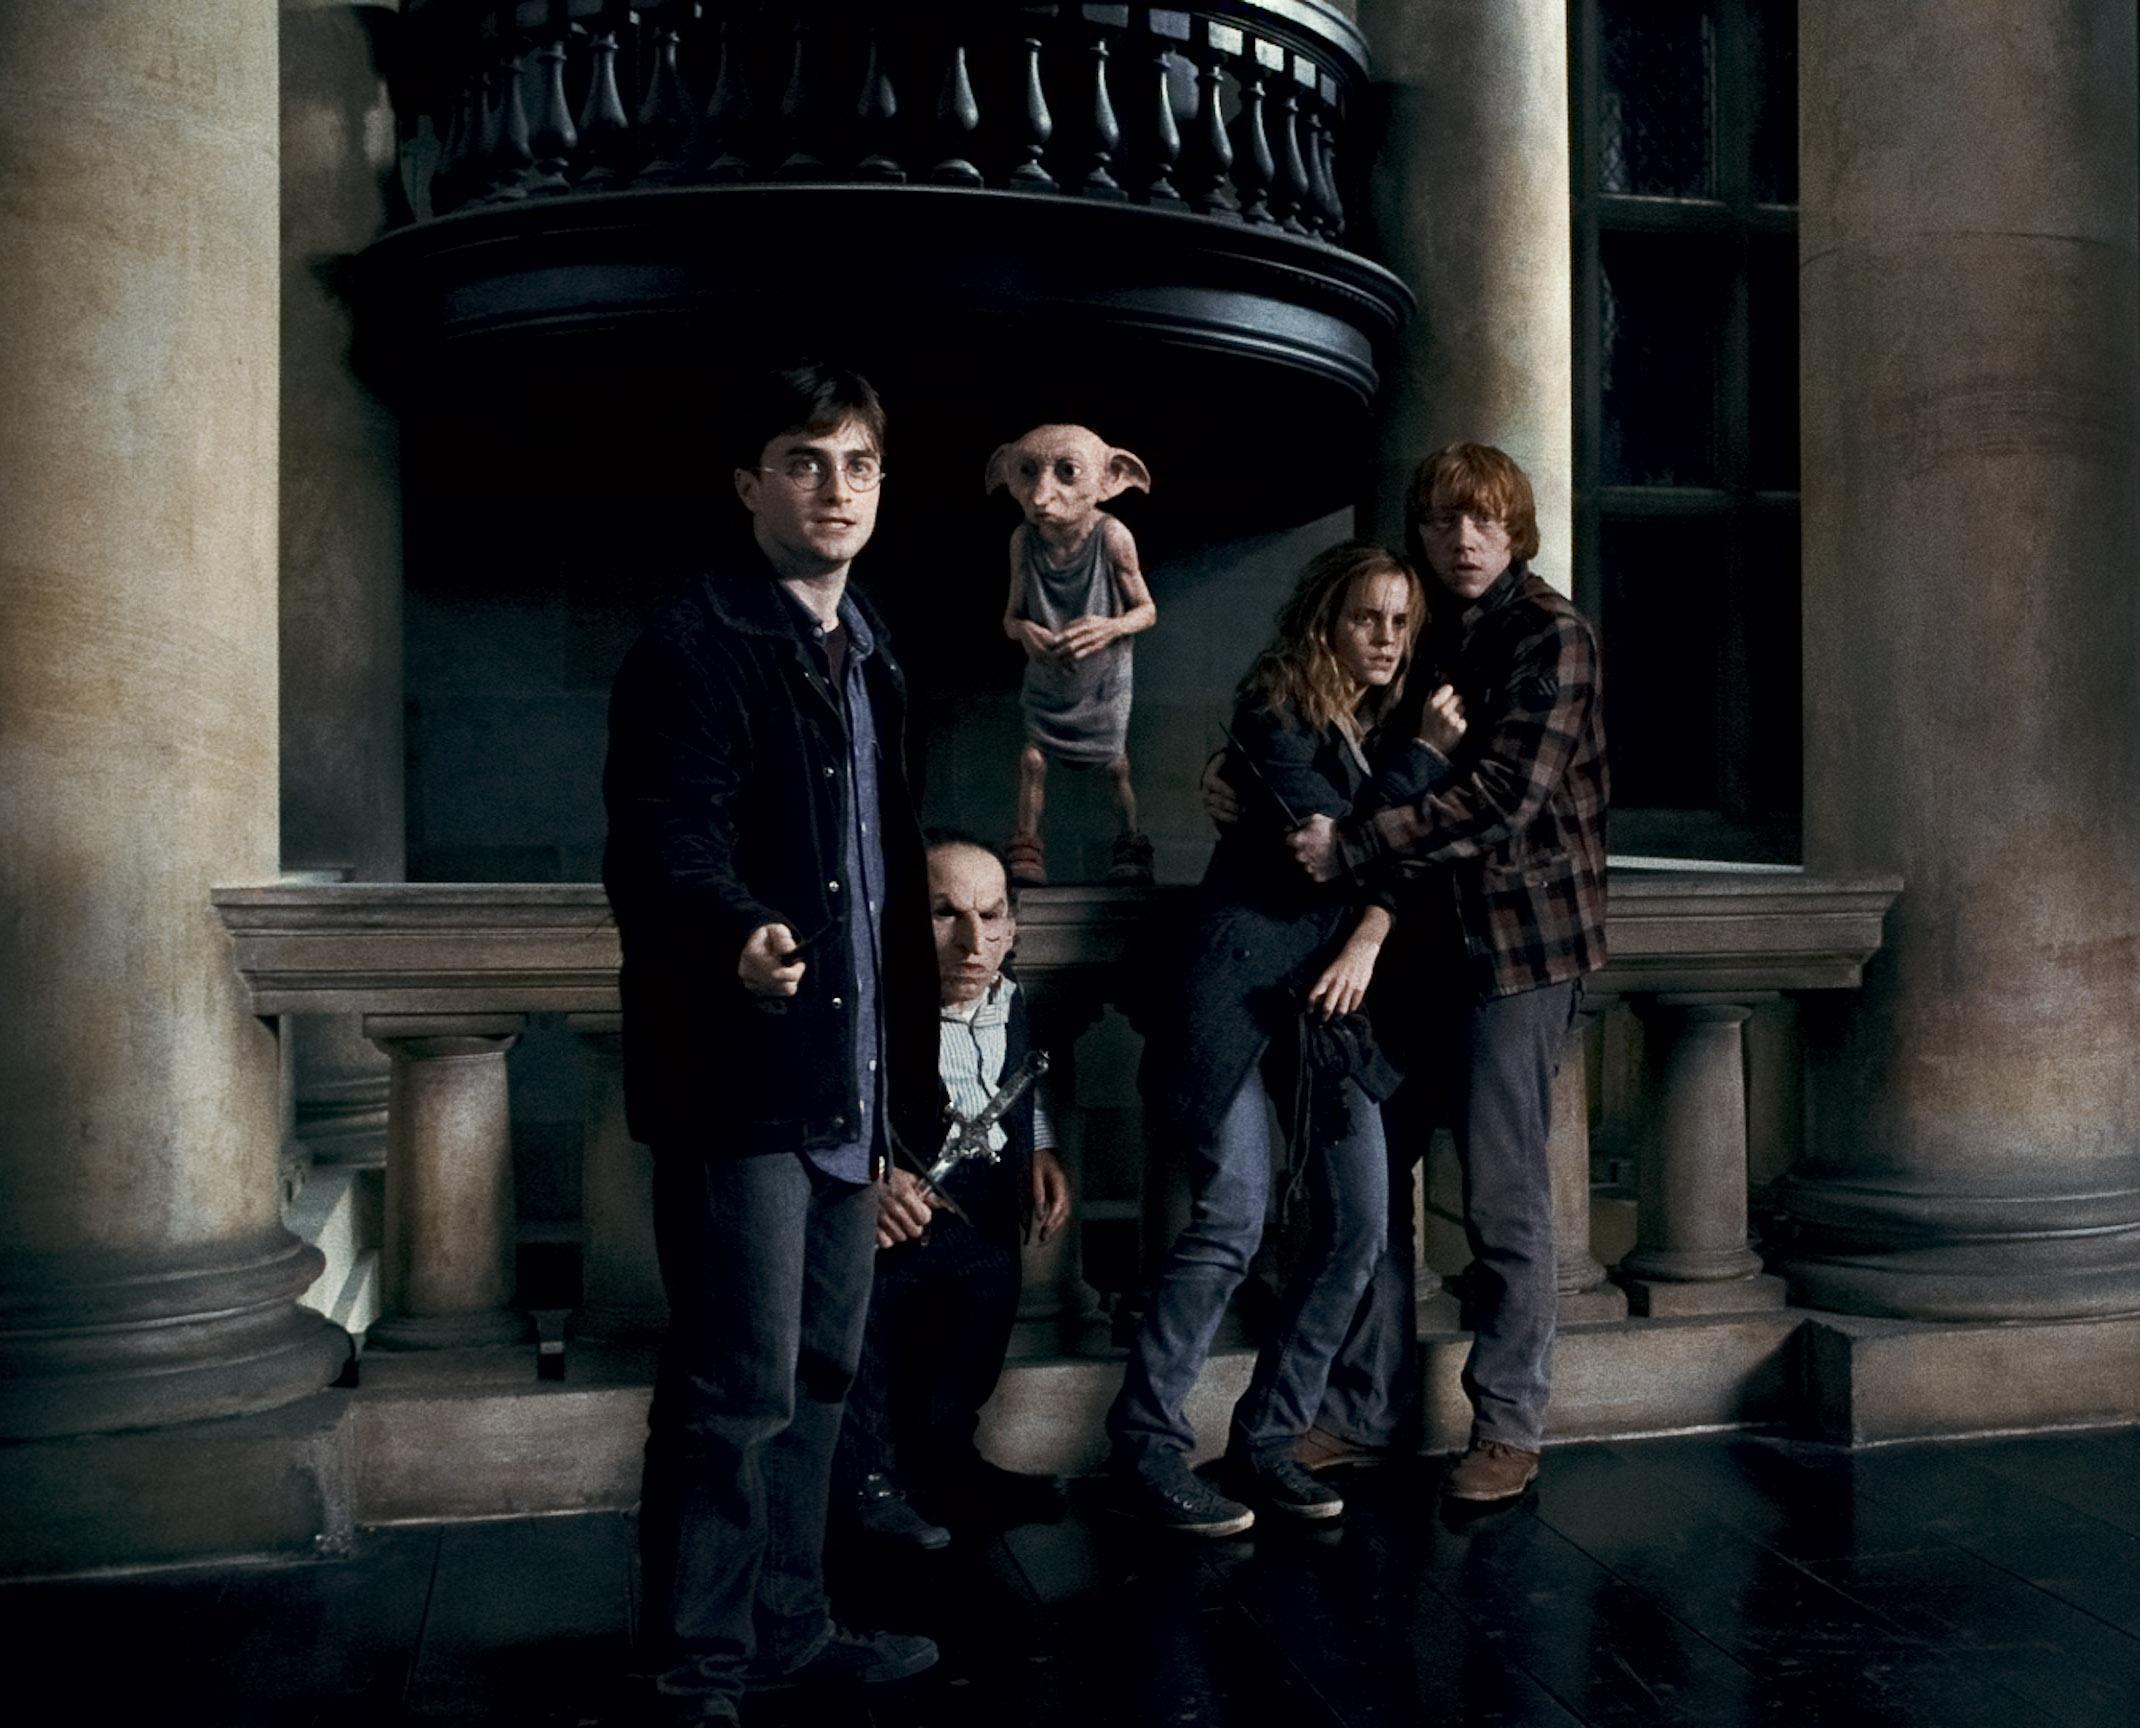 Jeu des images (version HP) - Page 25 Dobby-Griphook-and-Trio-harry-potter-and-the-deathly-hallows-movies-17181267-2140-1728